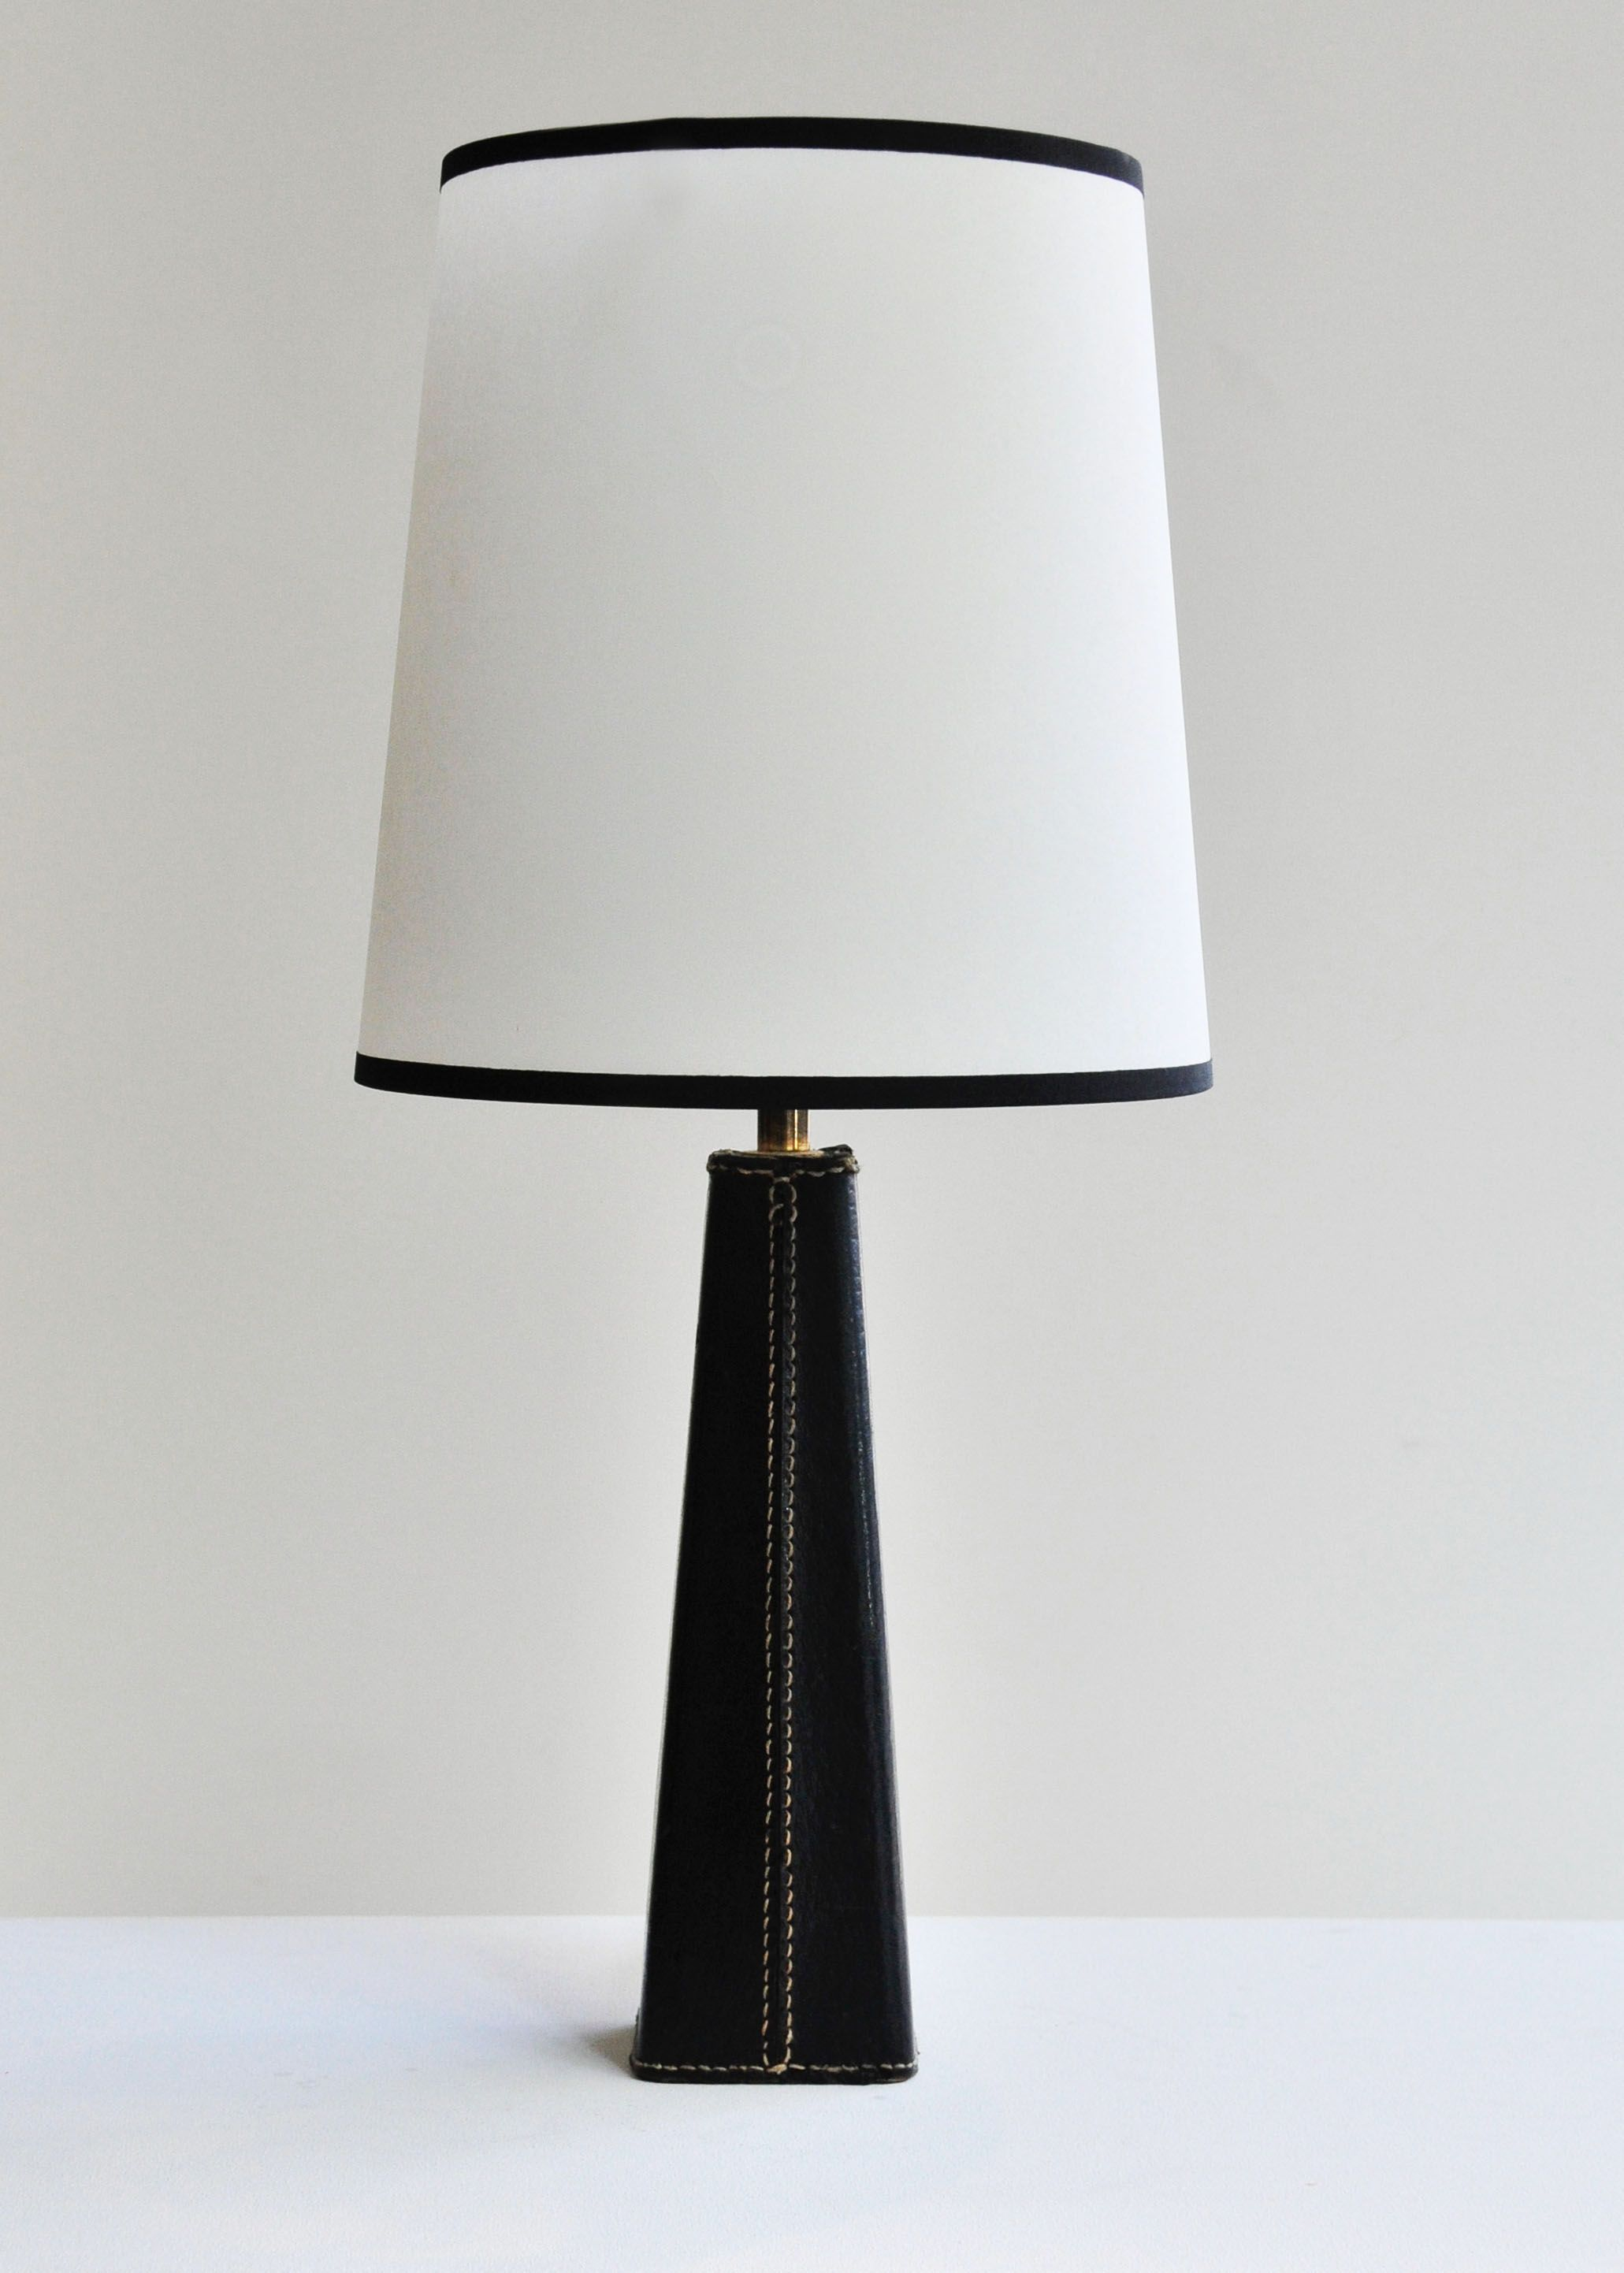 1950u0027s French Stitched Leather Table Lamp | Rose Uniacke